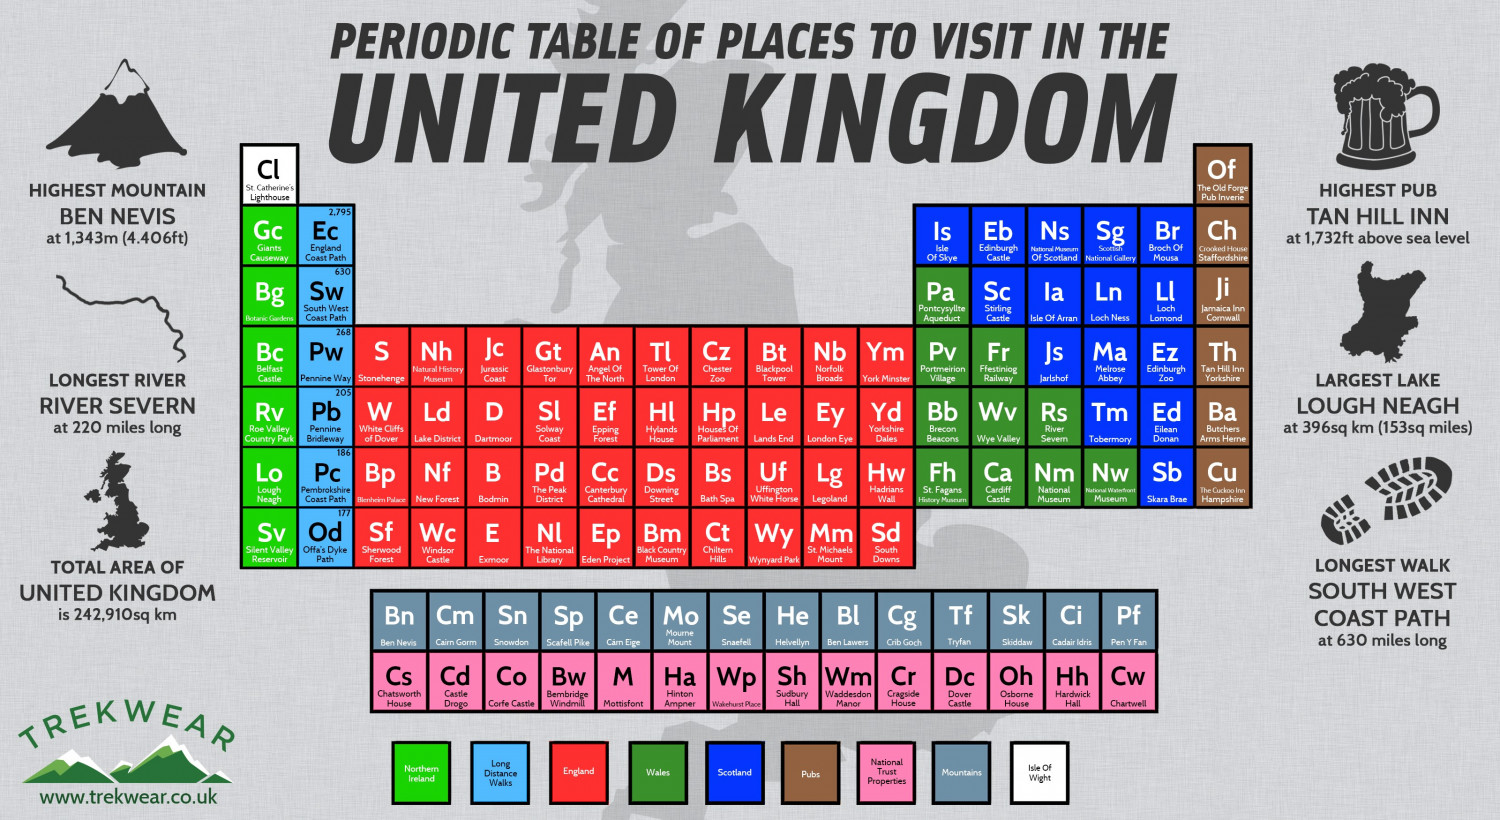 Periodic table of interesting places to visit in the United Kingdom Infographic